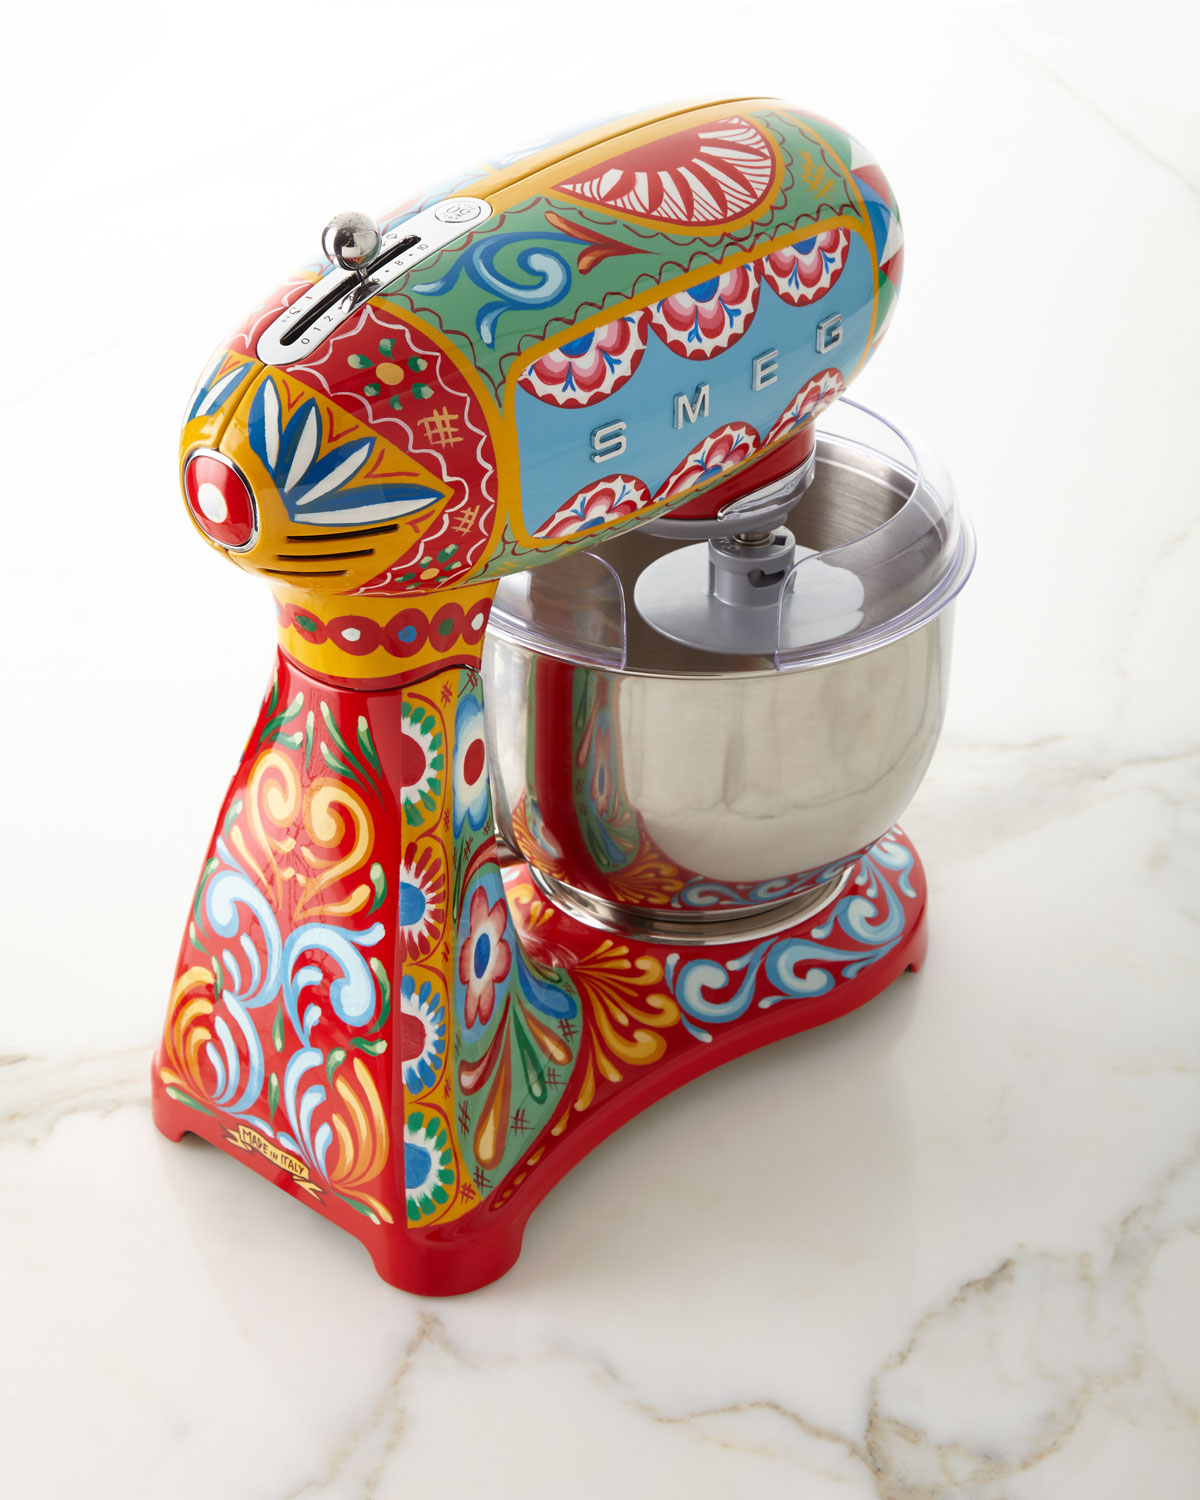 7ba924ad2be3 Dolce Gabbana x SMEG Sicily Is My Love Stand Mixer